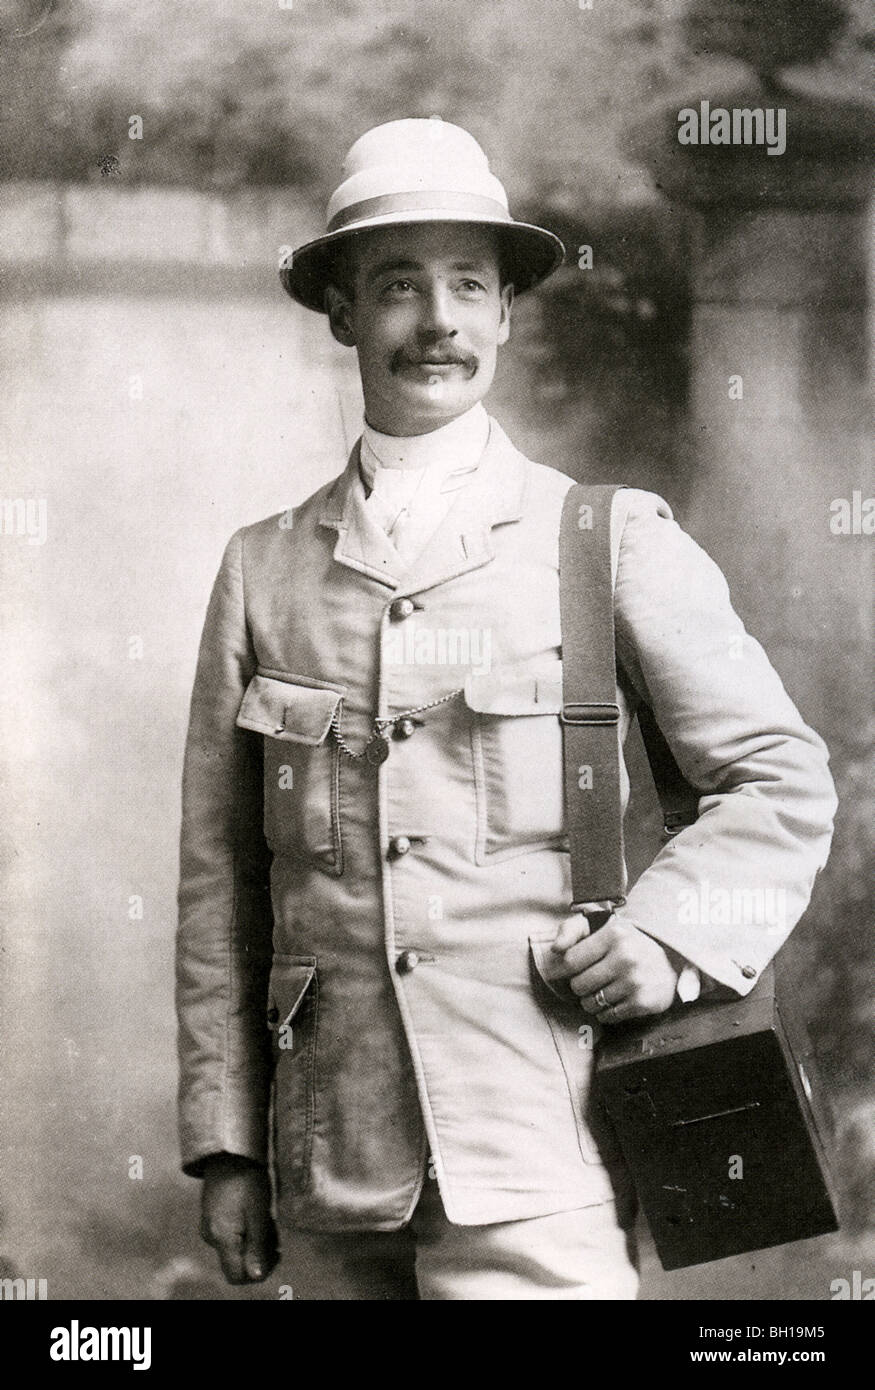 HORACE NICHOLLS - English photographer (1867-1941) who covered the Boer War as well as the English social scene - Stock Image